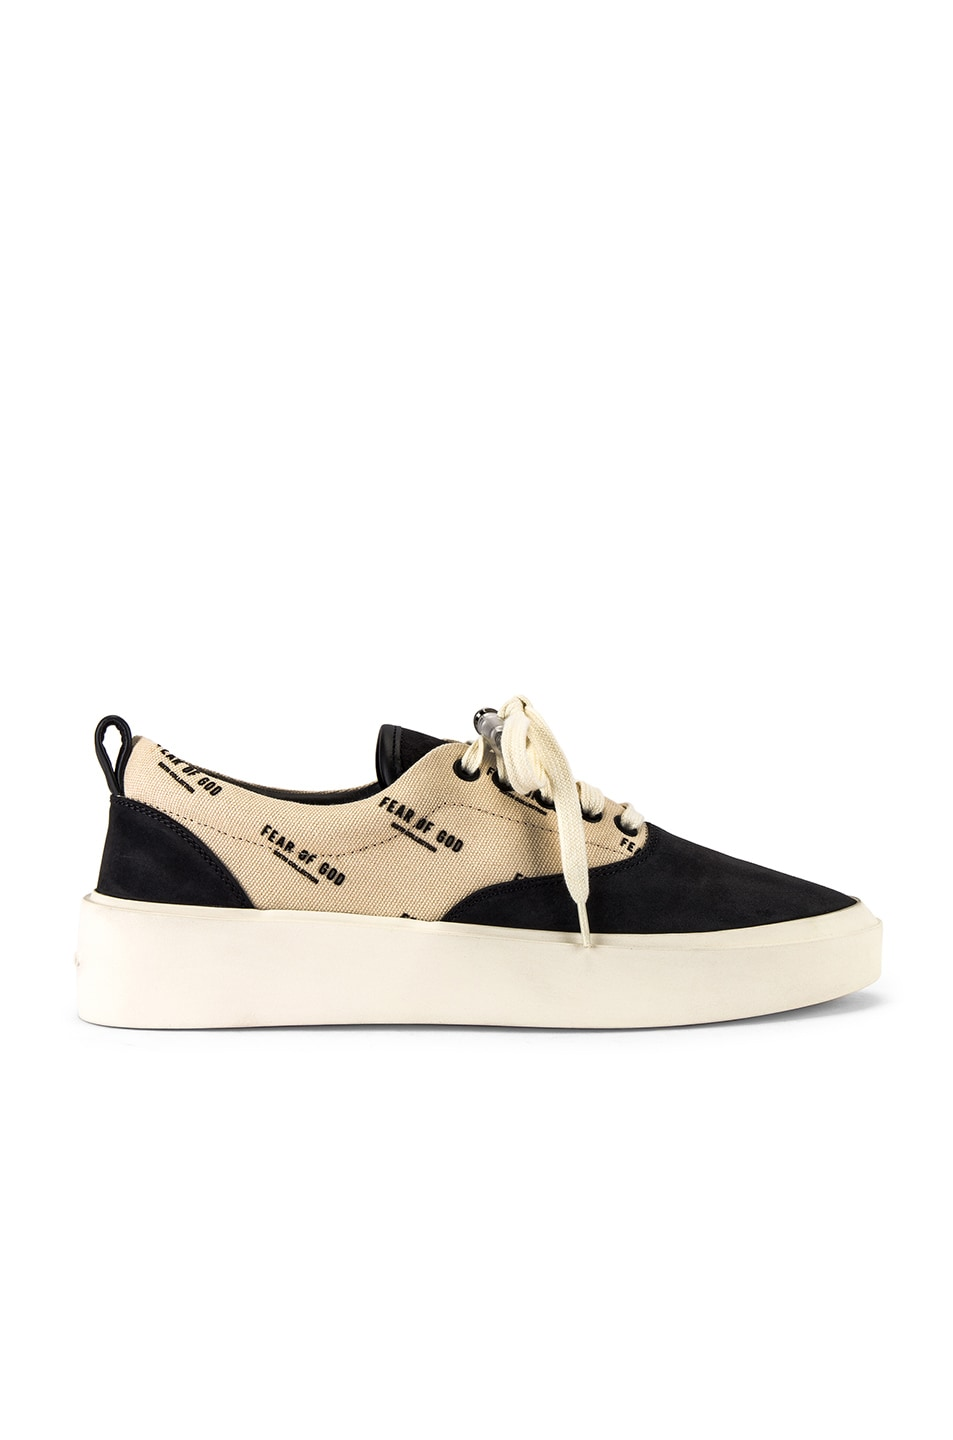 Image 2 of Fear of God 101 Lace Up Sneaker in Black & Creme Logo Print